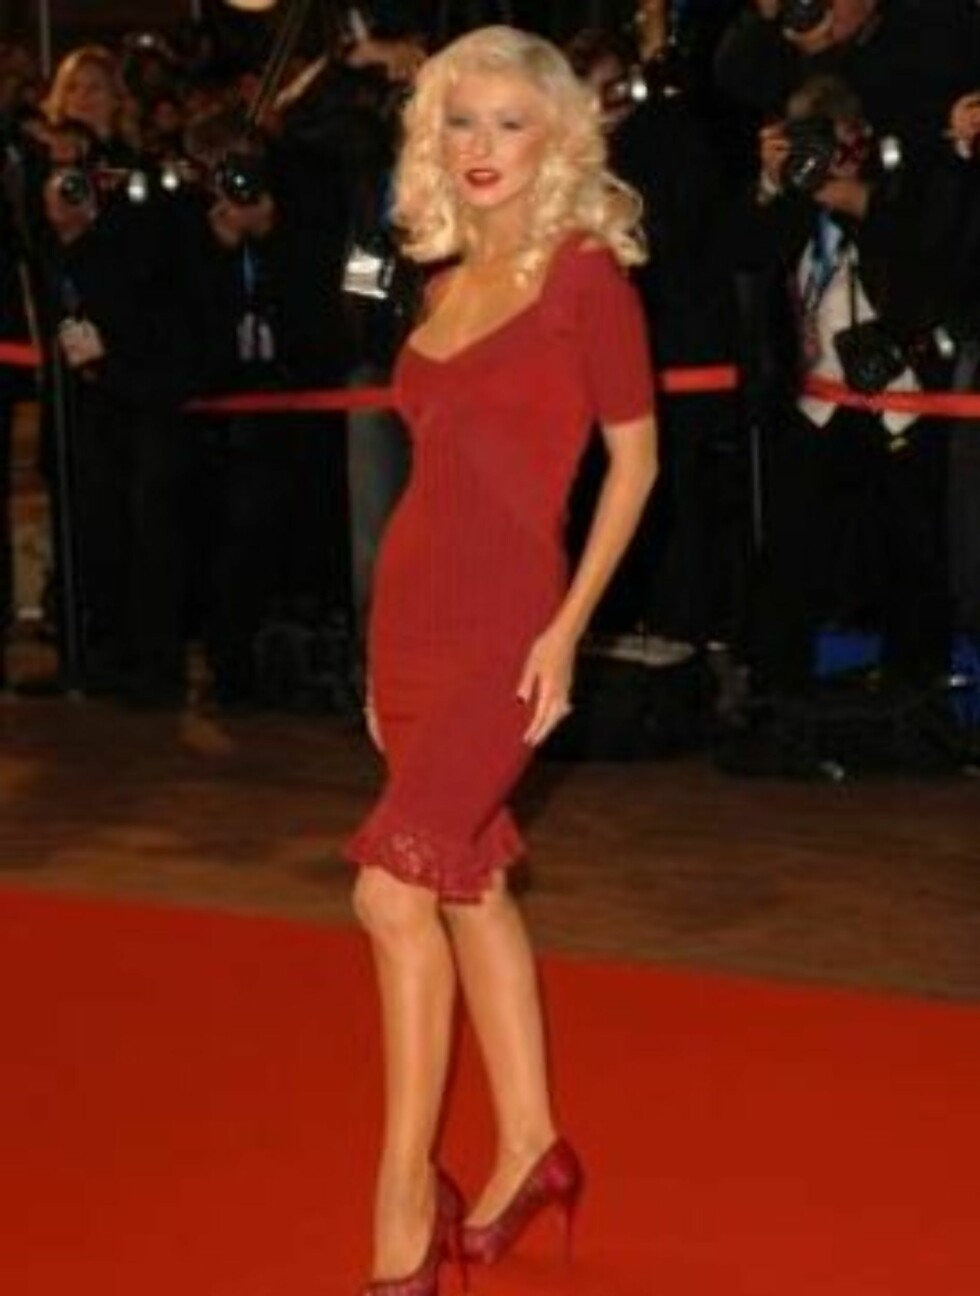 <strong>FØR:</strong> En vesentlig tynnere Christina Aguilera.  Foto: All Over Press